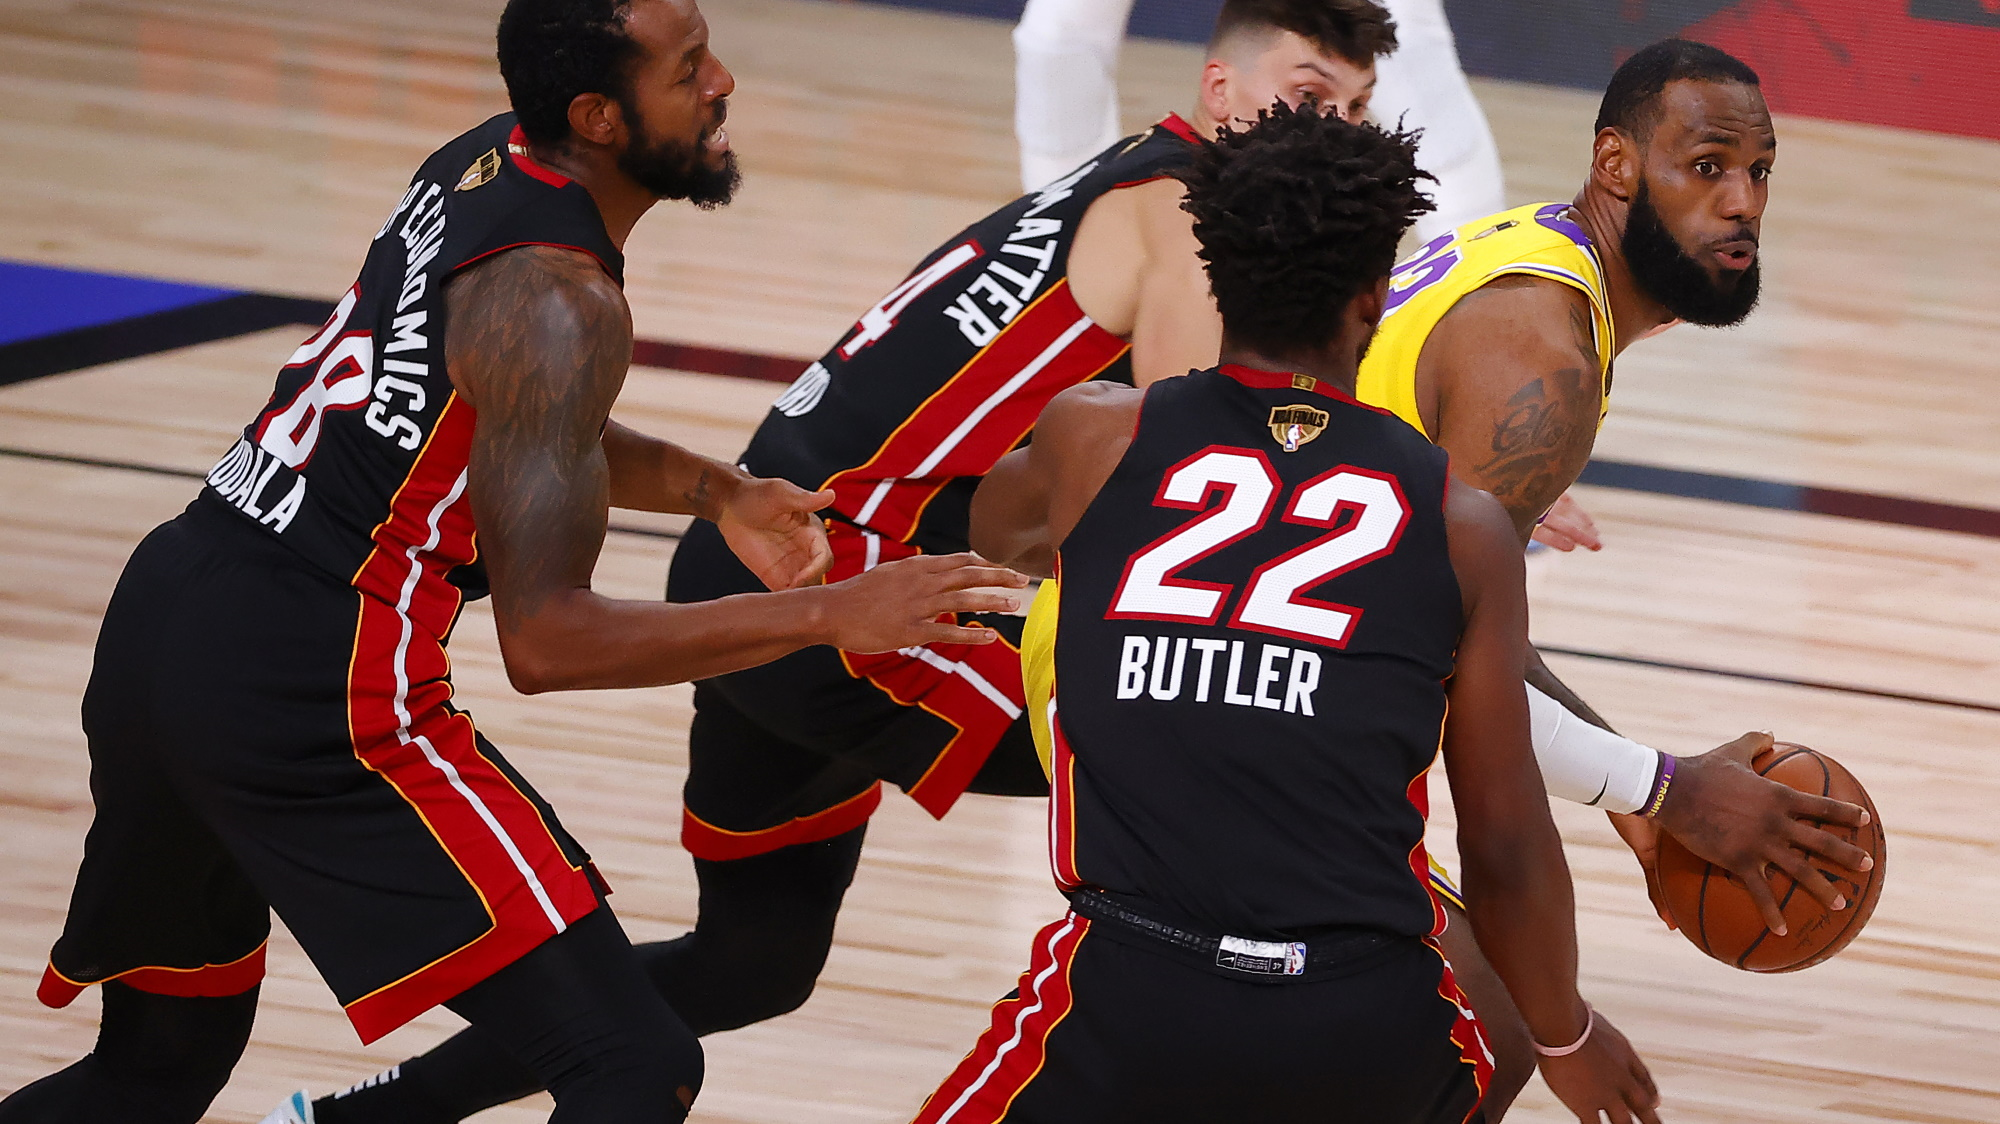 Lakers Vs Heat Live Stream How To Watch Nba Finals Game 2 Online From Anywhere Now Techradar